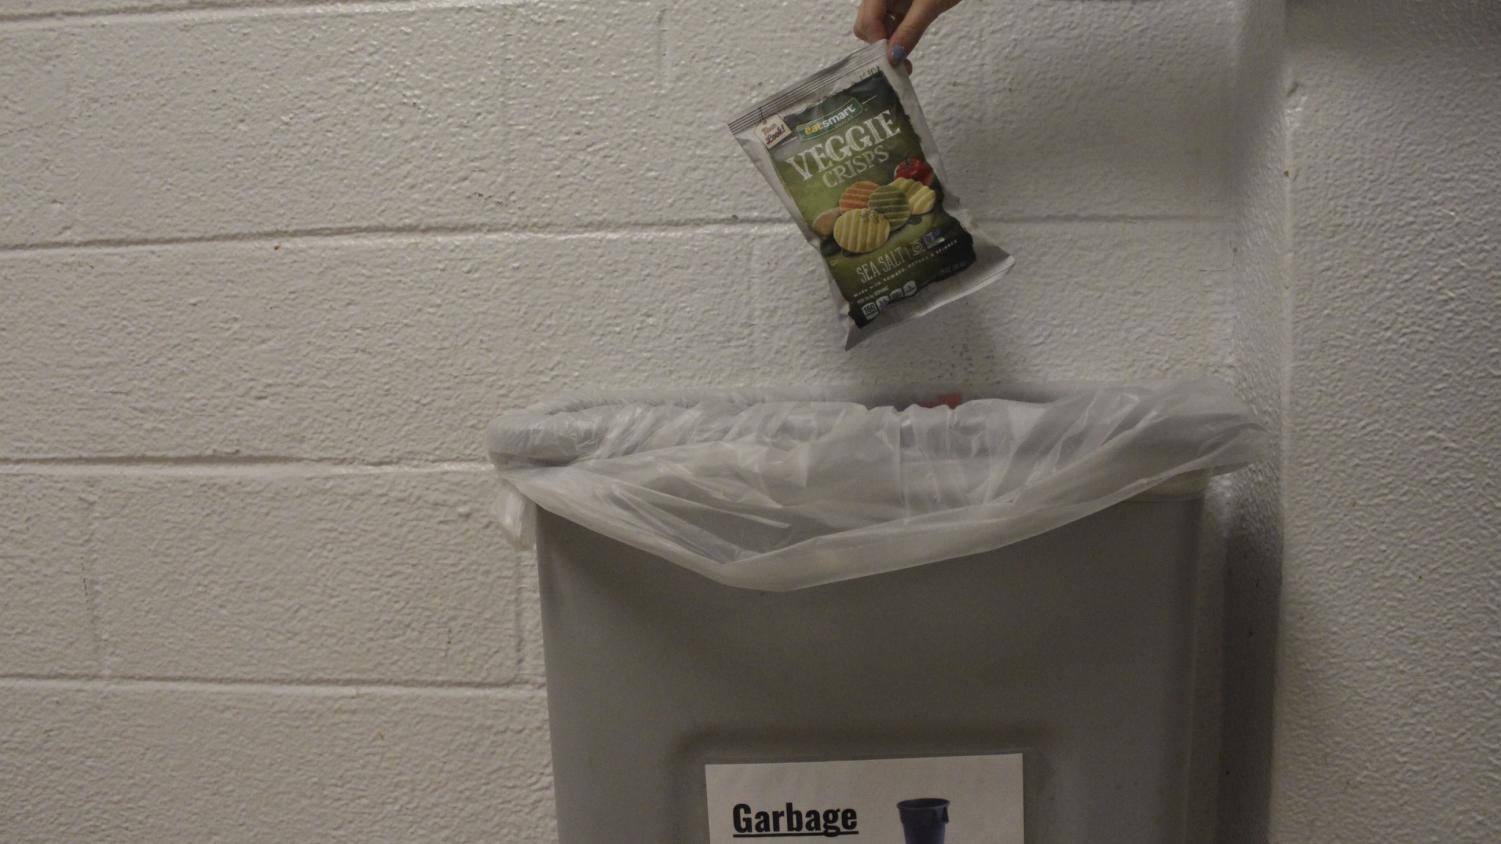 The Environmental Club is raising awareness about recycling now that PV recycles for the 2018/2019 school year.